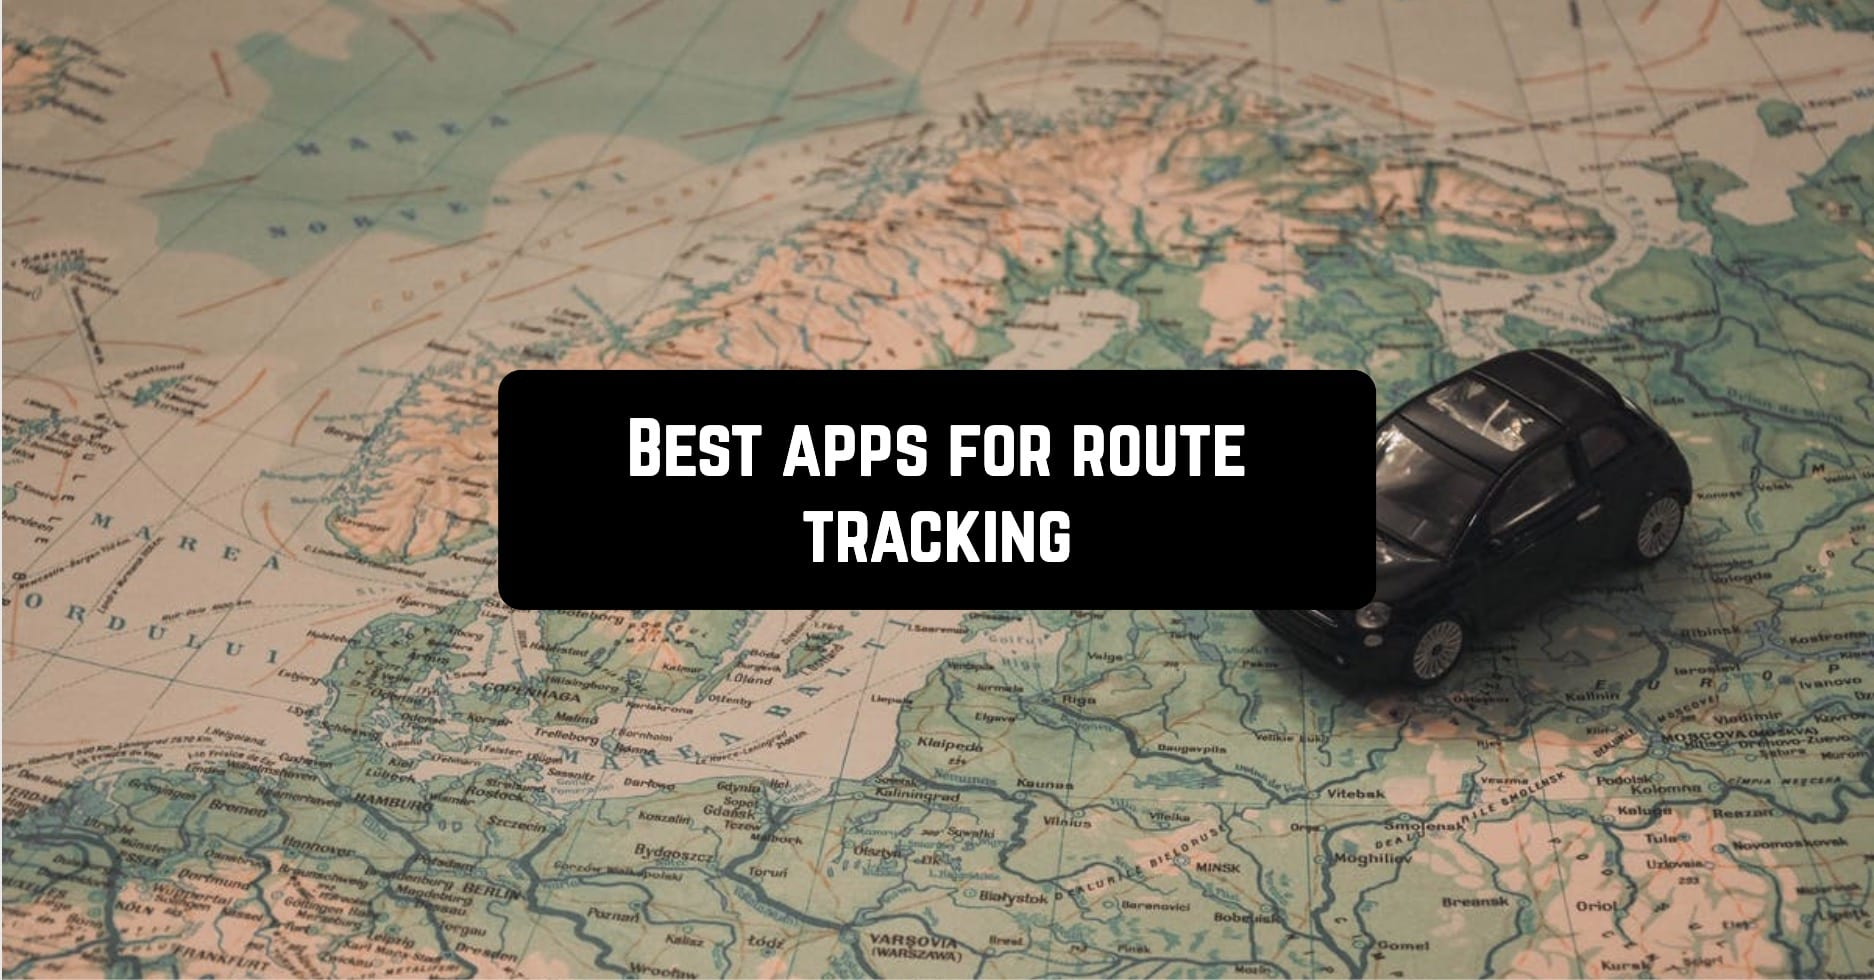 Best apps for route tracking